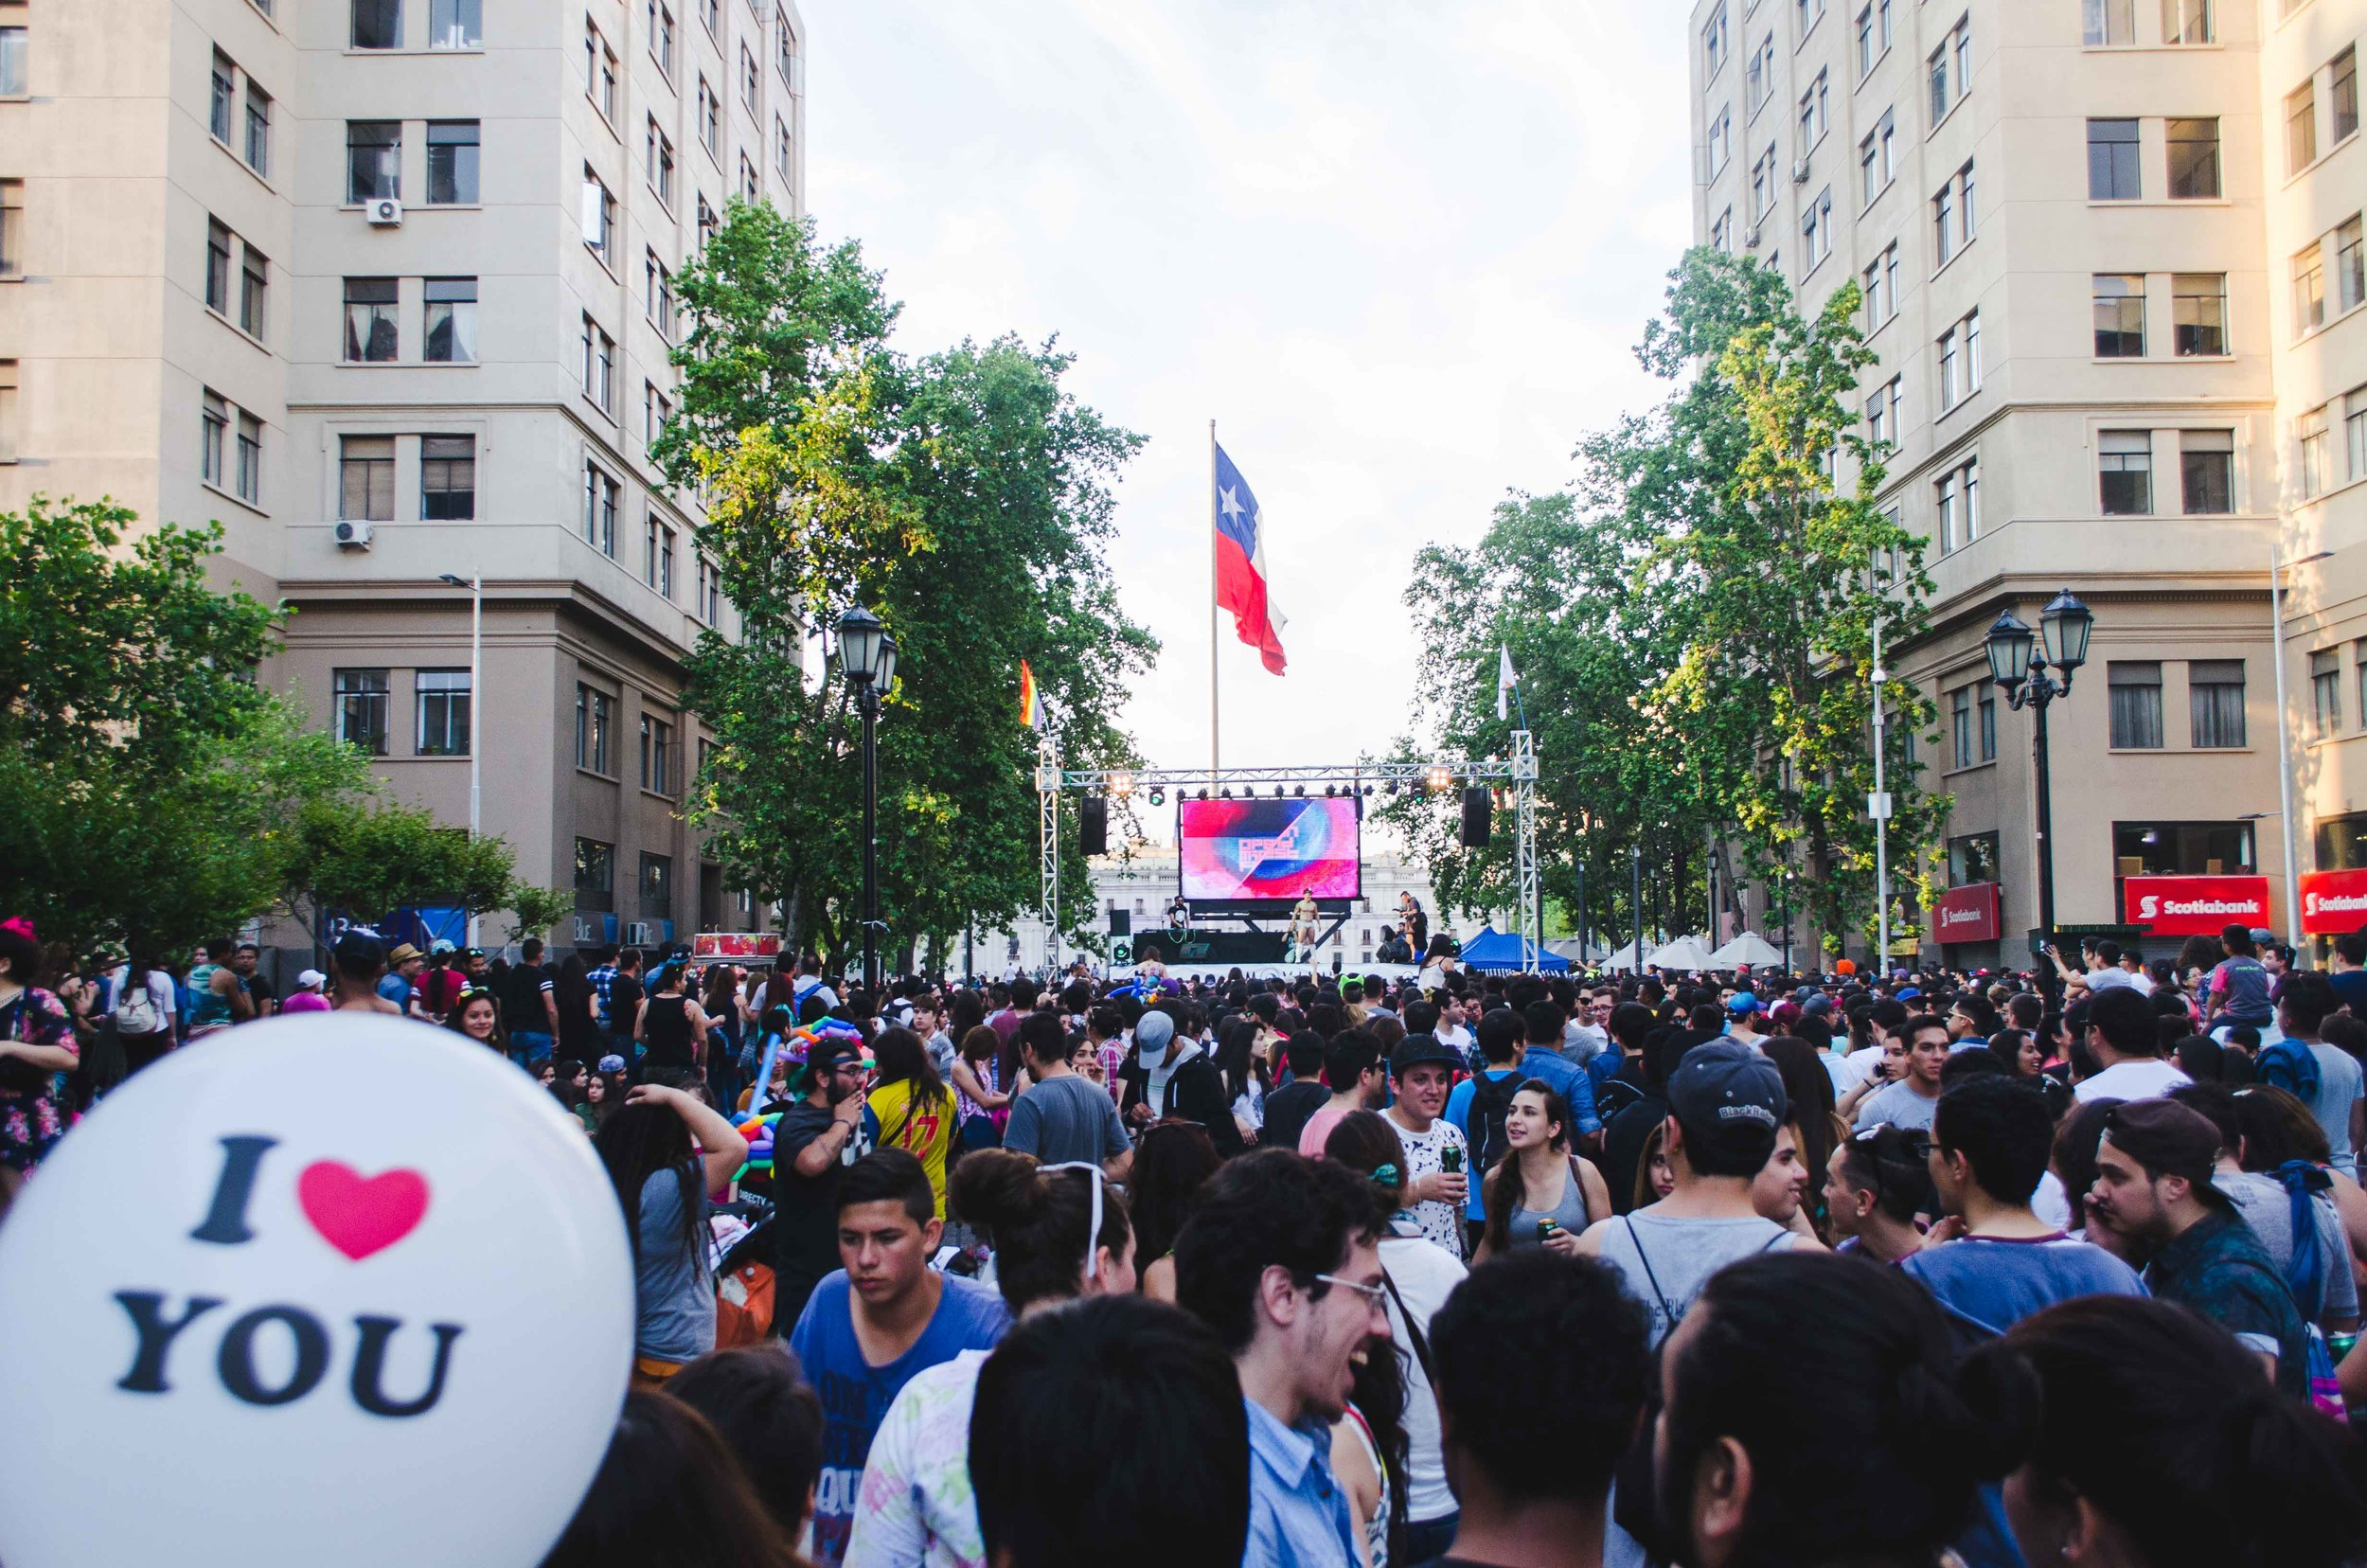 Pride fest in the pedestrian-only boulevard in front of La Moneda (palace) in Santiago